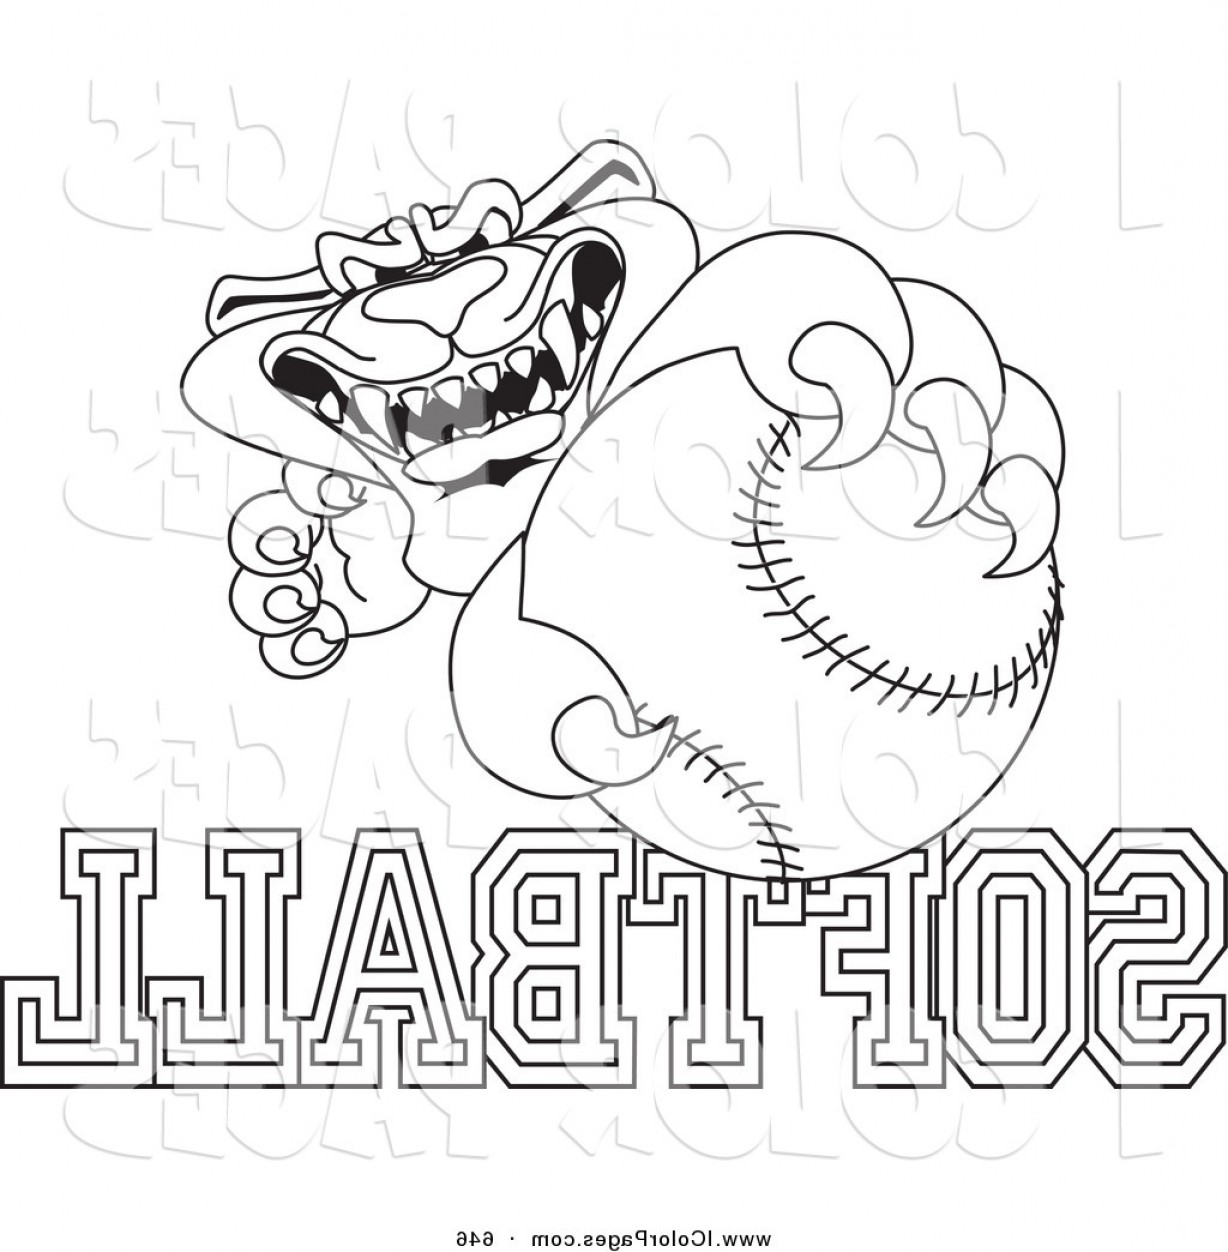 Panther Mascot Vector Sports: Vector Coloring Page Of A Outline Design Of A Panther Character Mascot With Softball Text By Toonsbiz